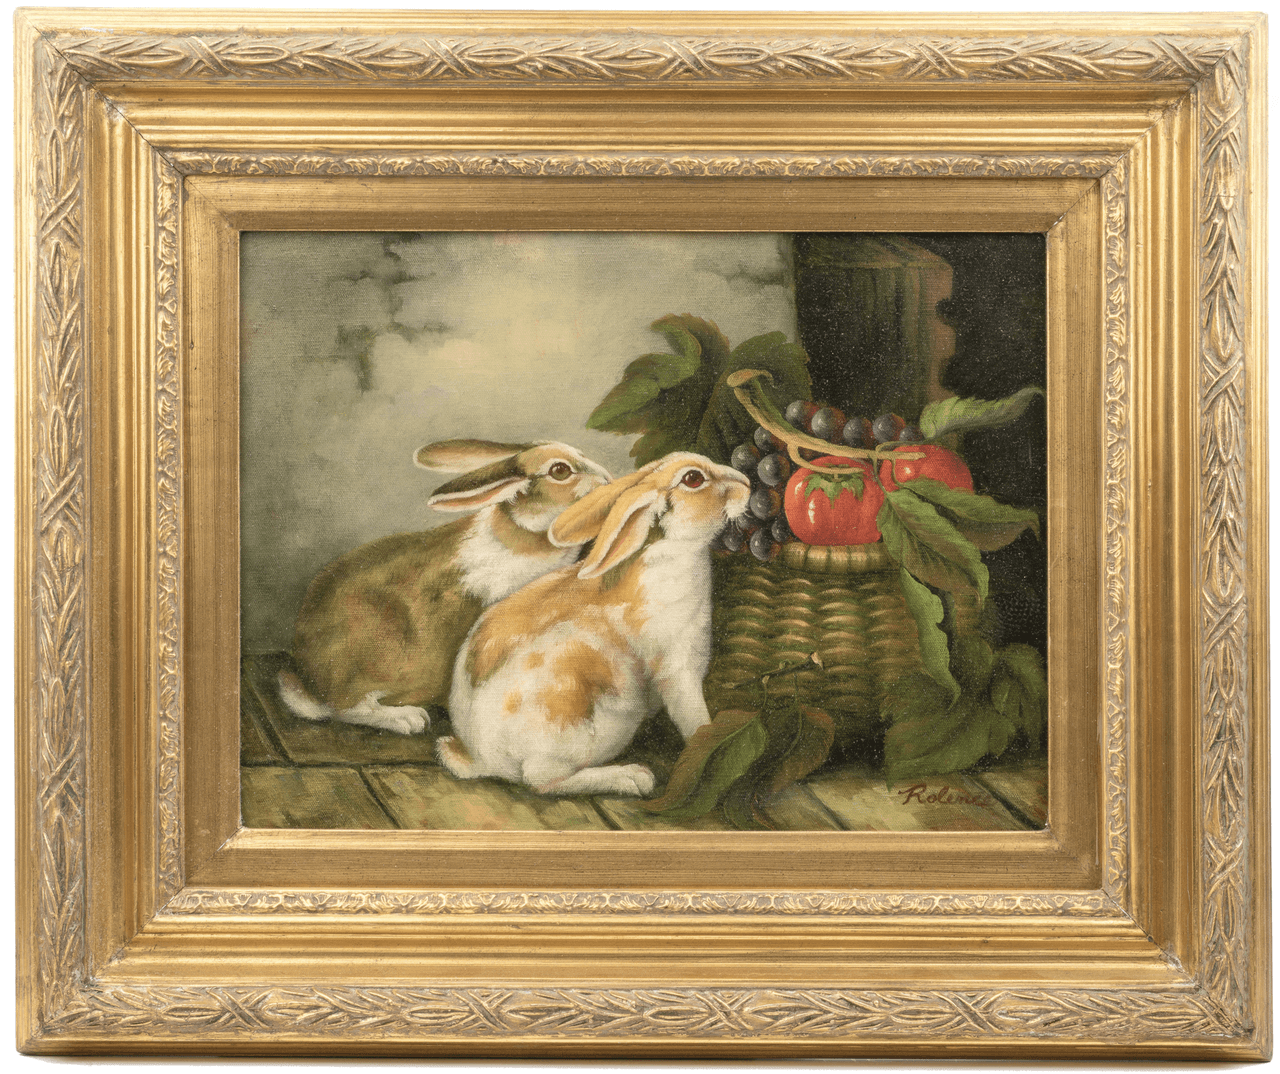 A 20th Century English Still Life Oil Painting Of Rabbits In the Manner of Alfred Richardson Barber